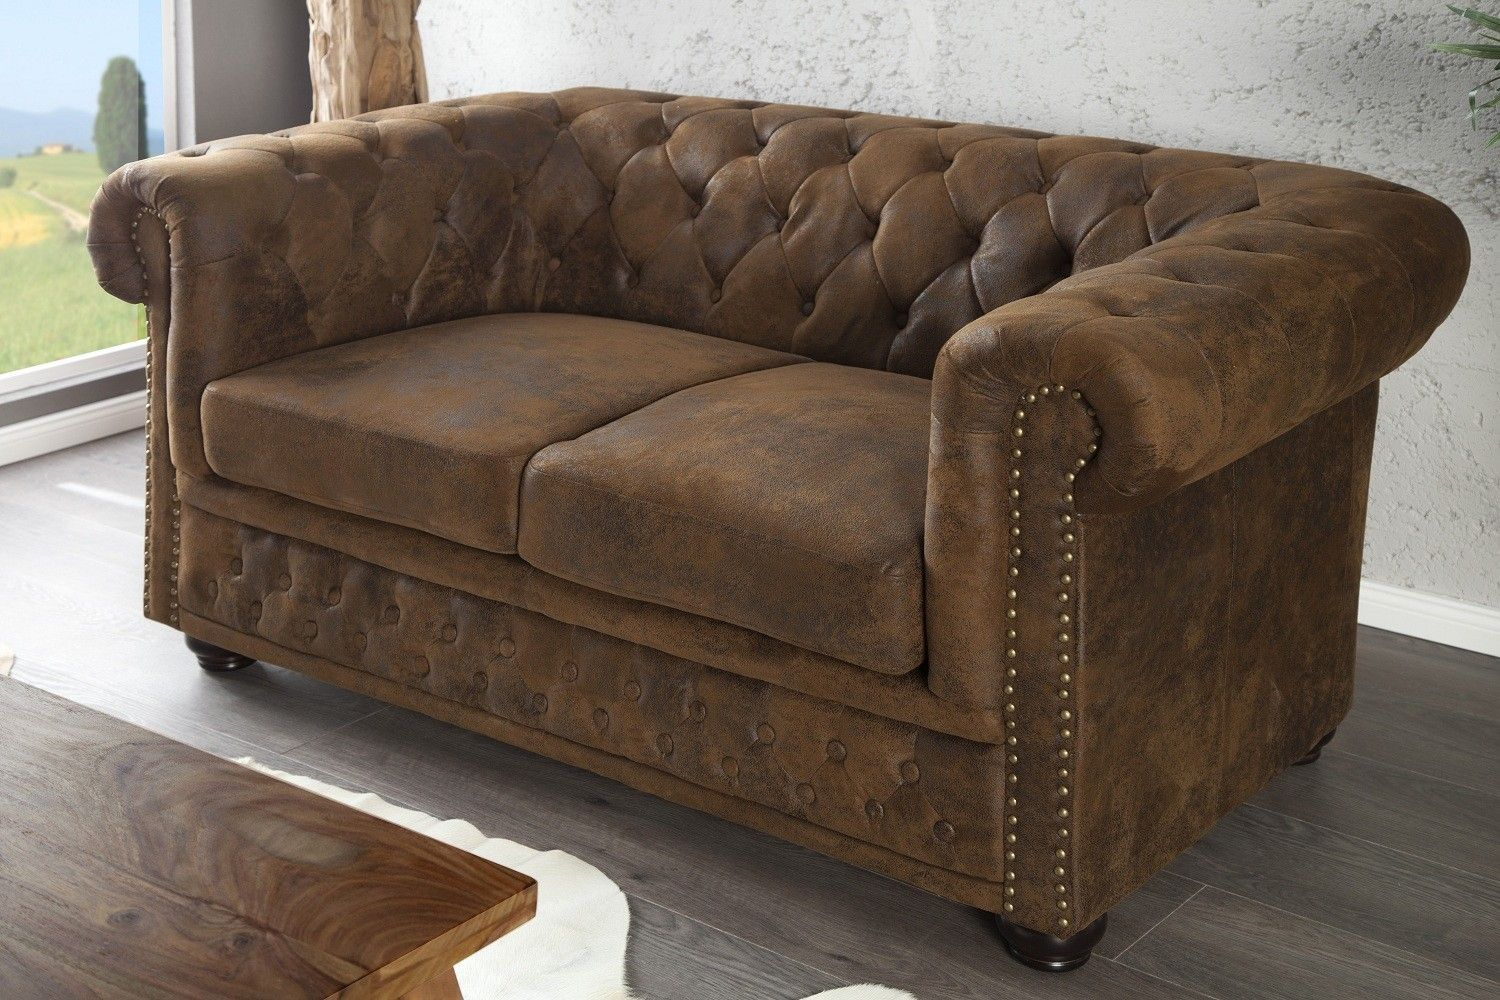 Chesterfield Sofa Riess Ambiente Pin By Амелин Д А On Честерфилд Pinterest Canapes And